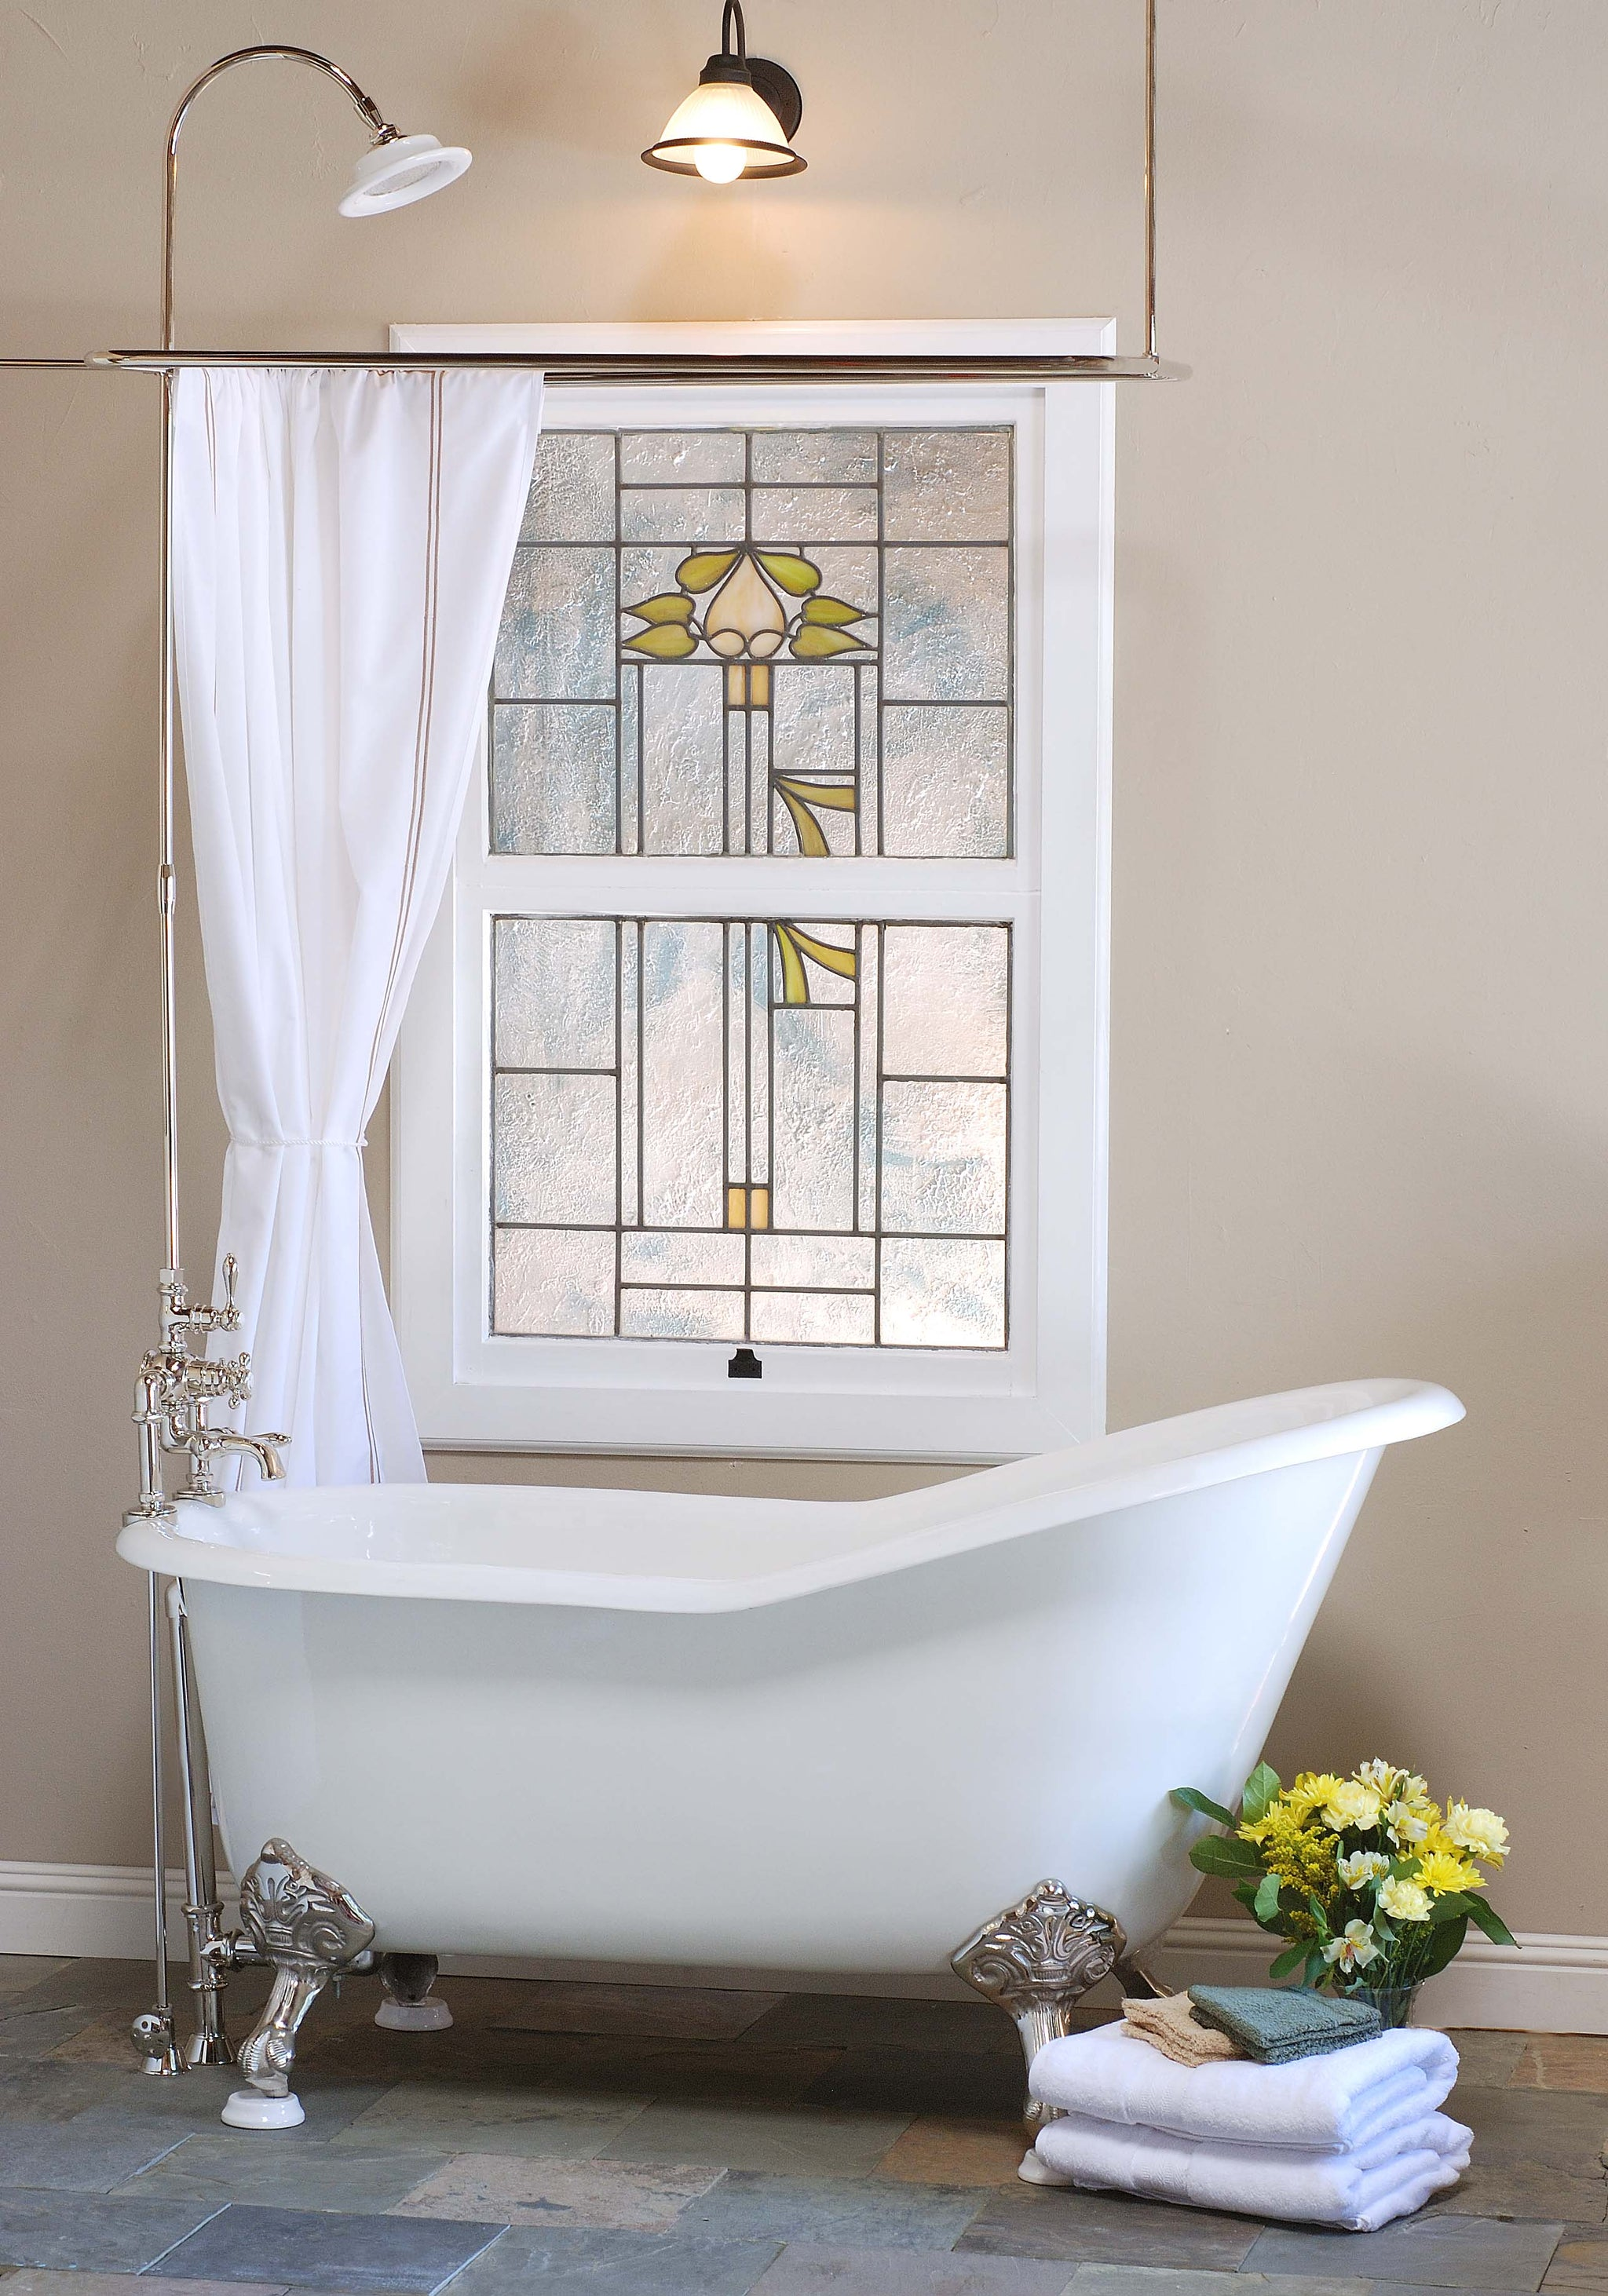 Benefits of a Clawfoot Bathtub